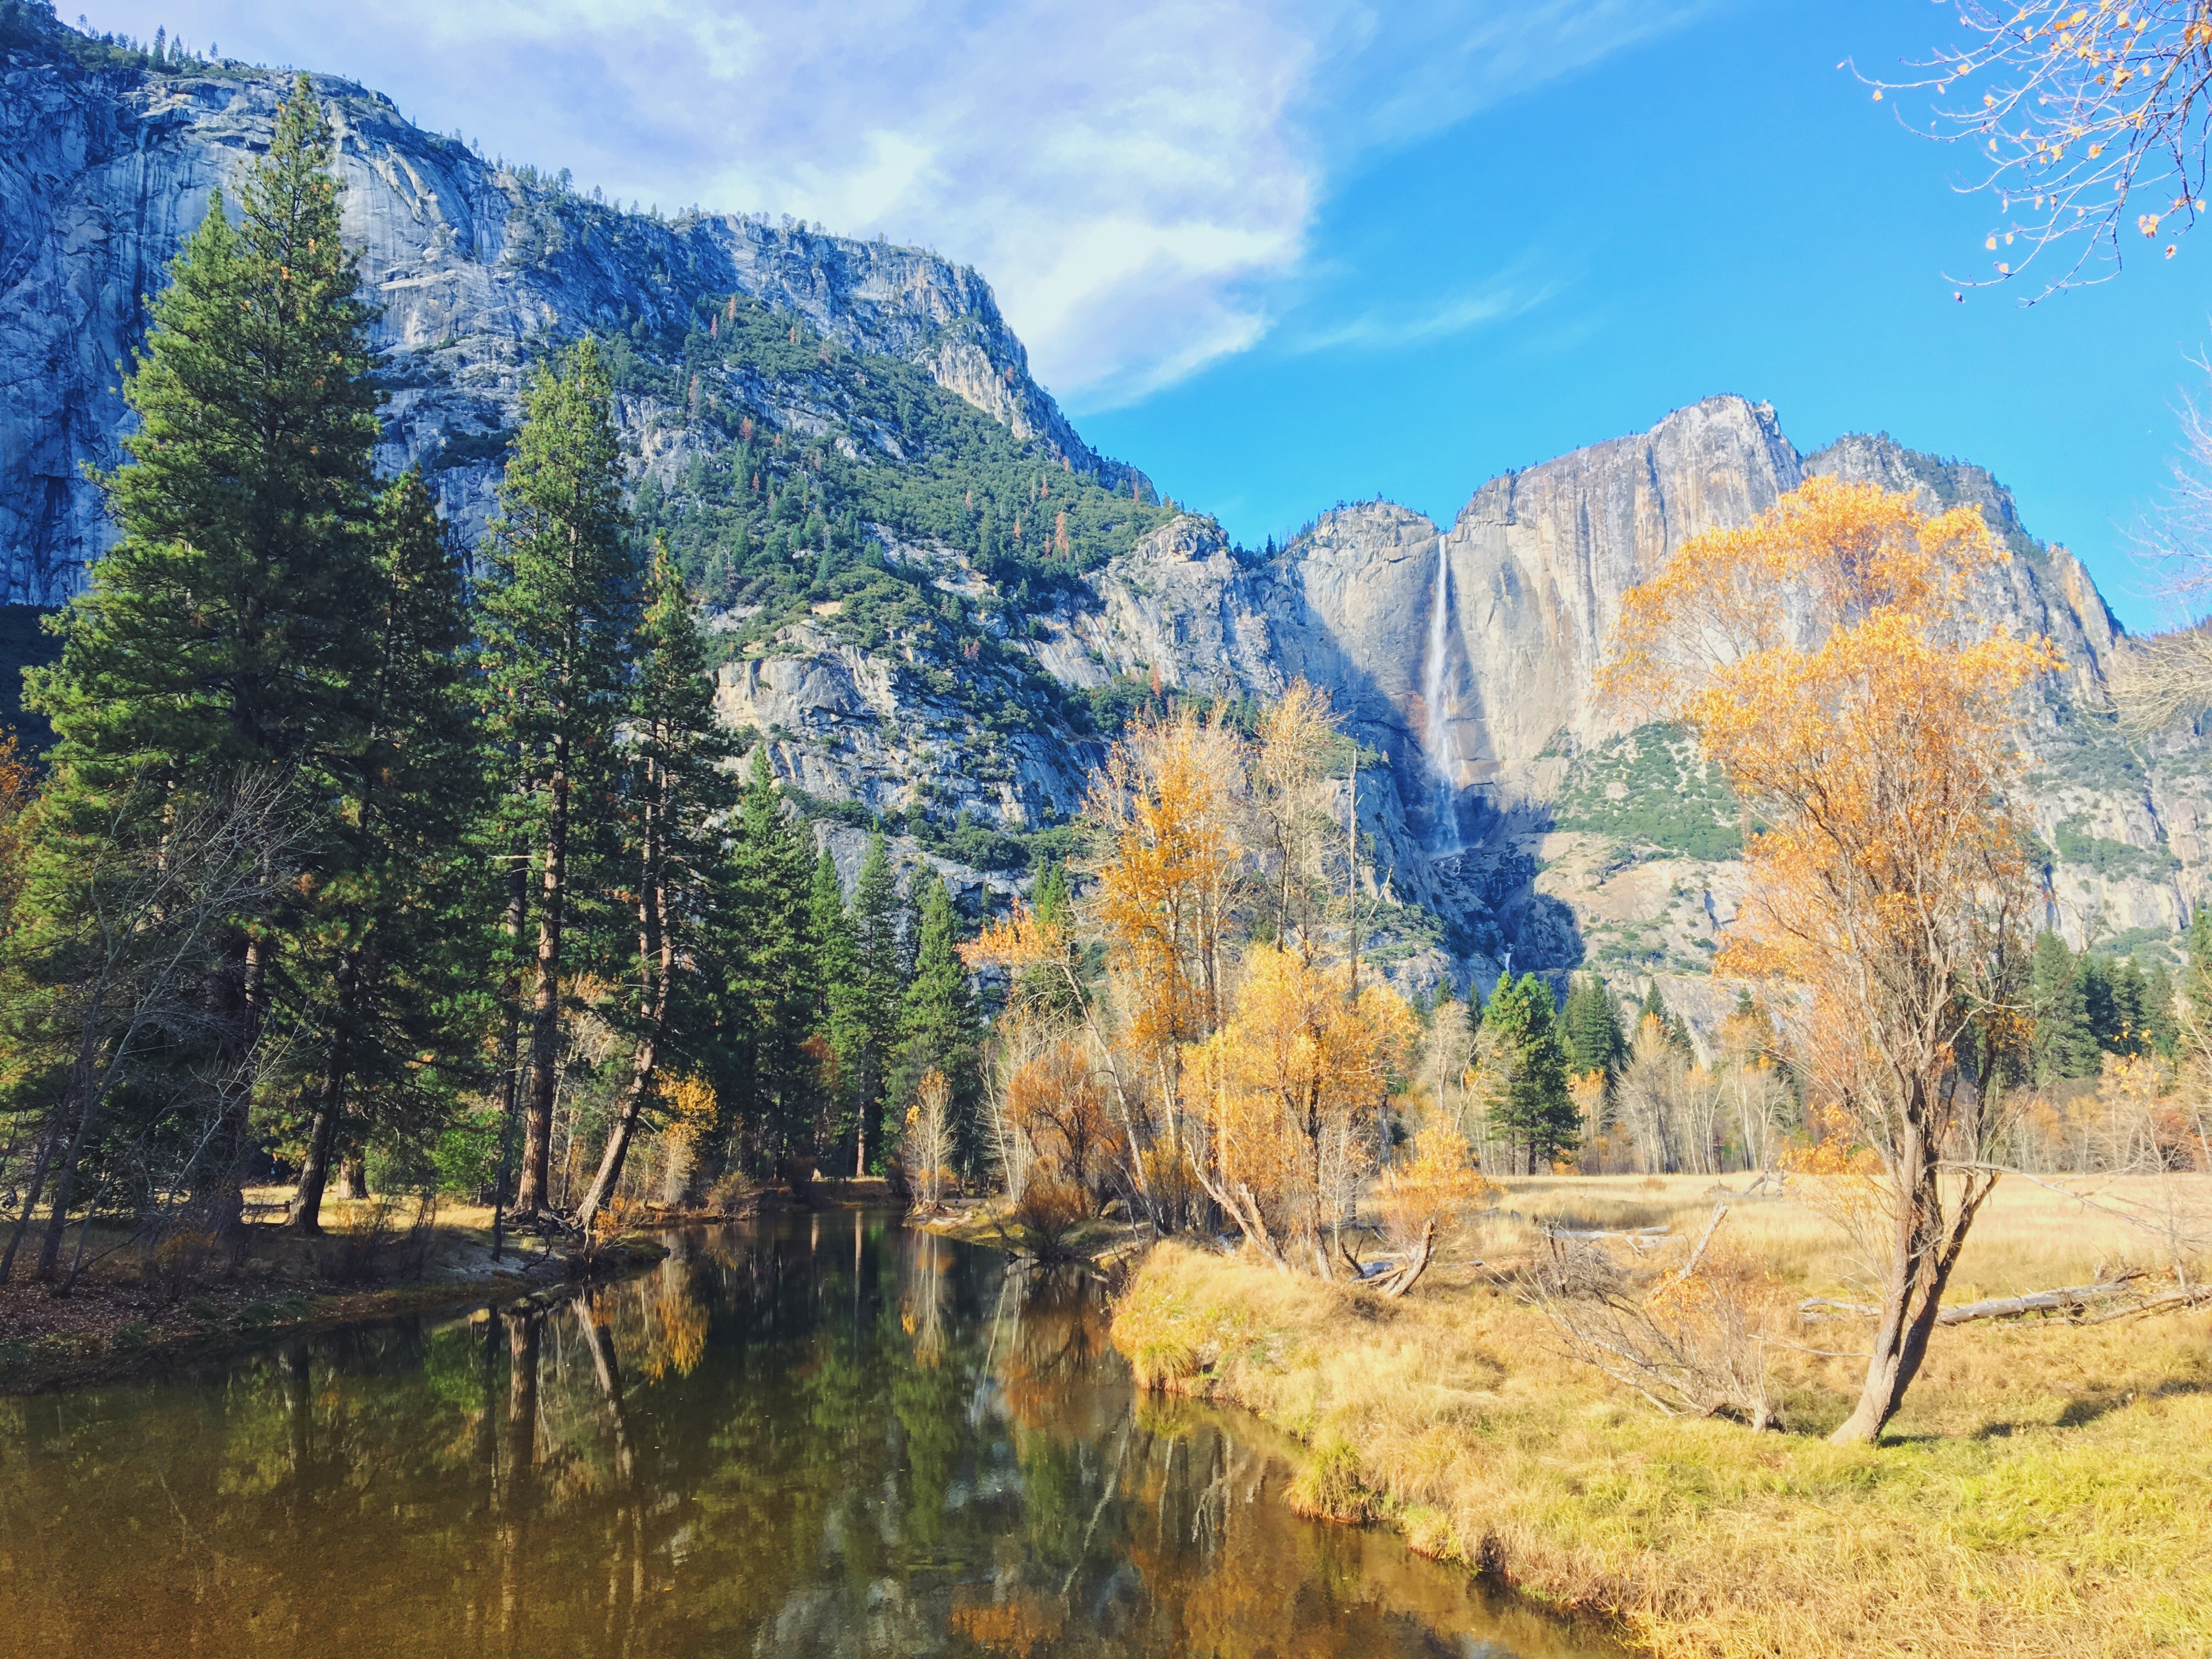 Merced river - Yosemite Park foliage - i colori dell'autunno